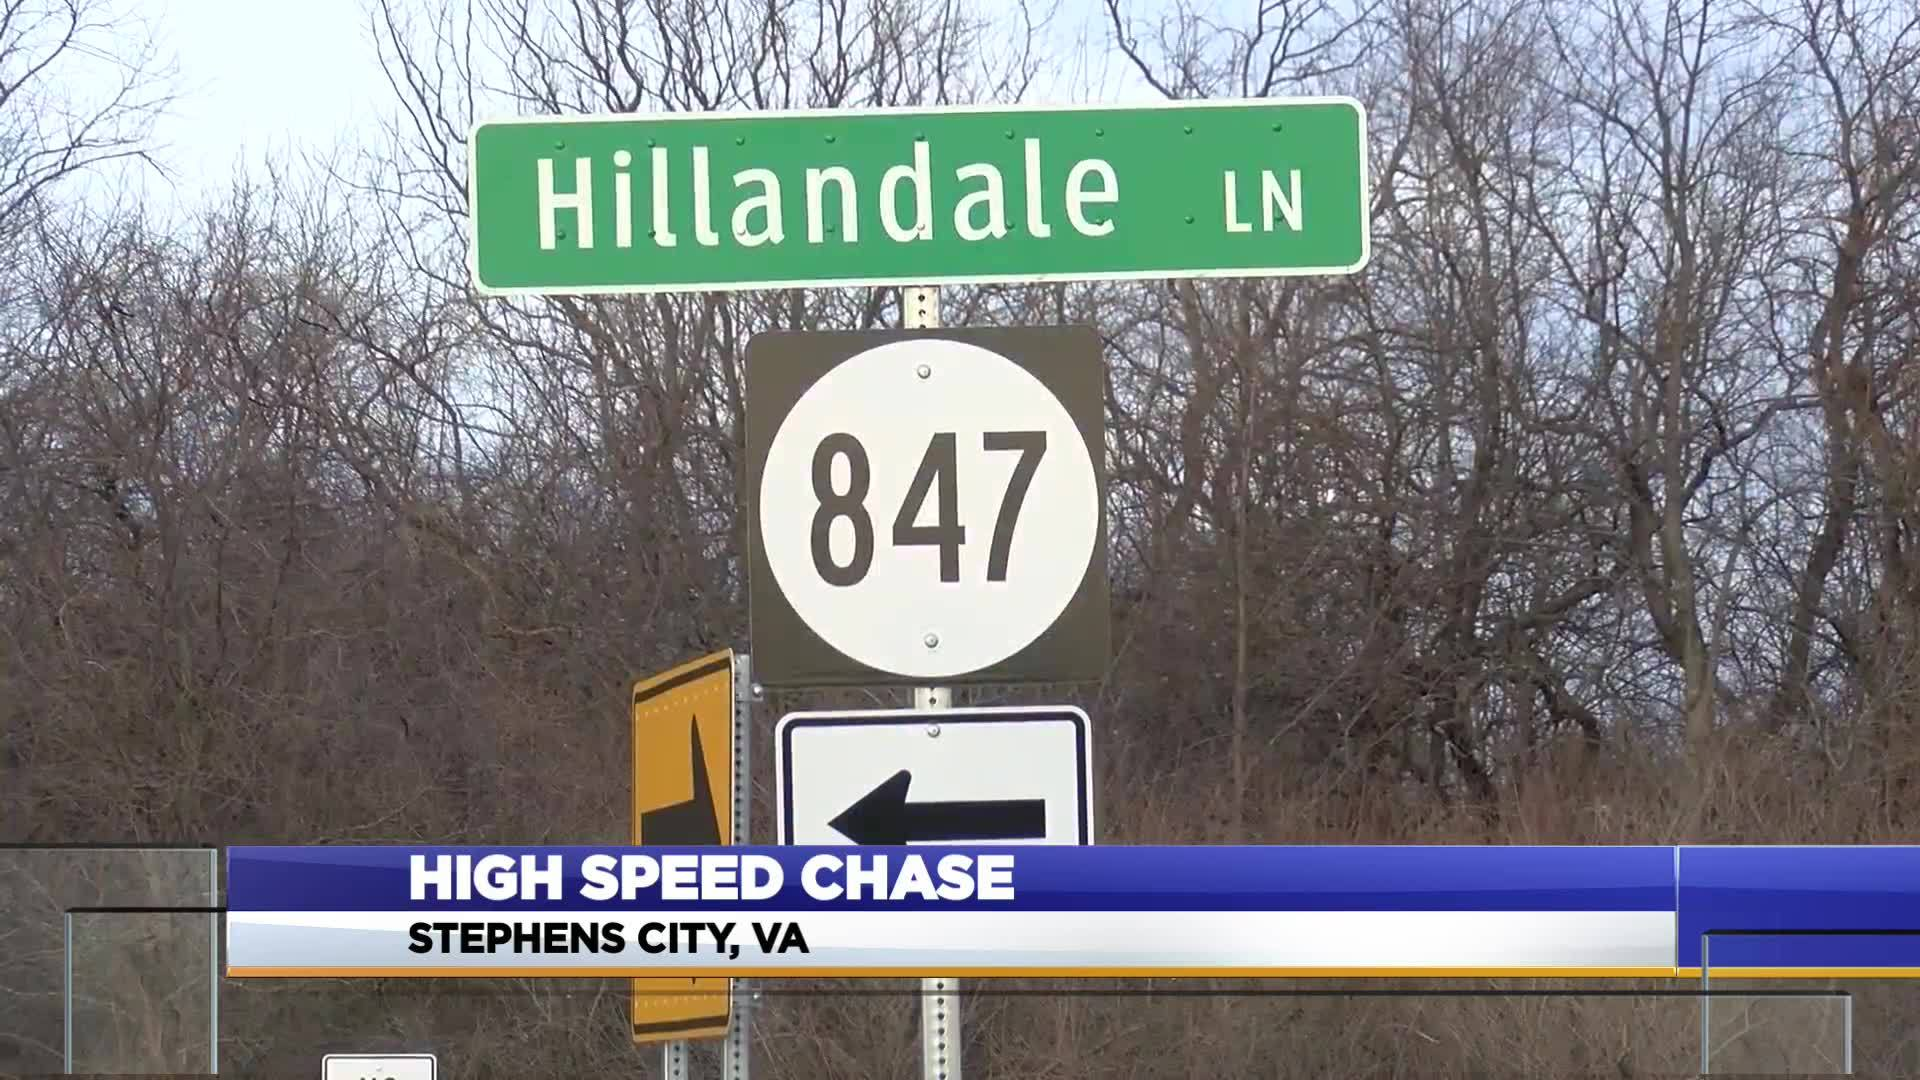 High_Speed_Chase_4_20190206031618